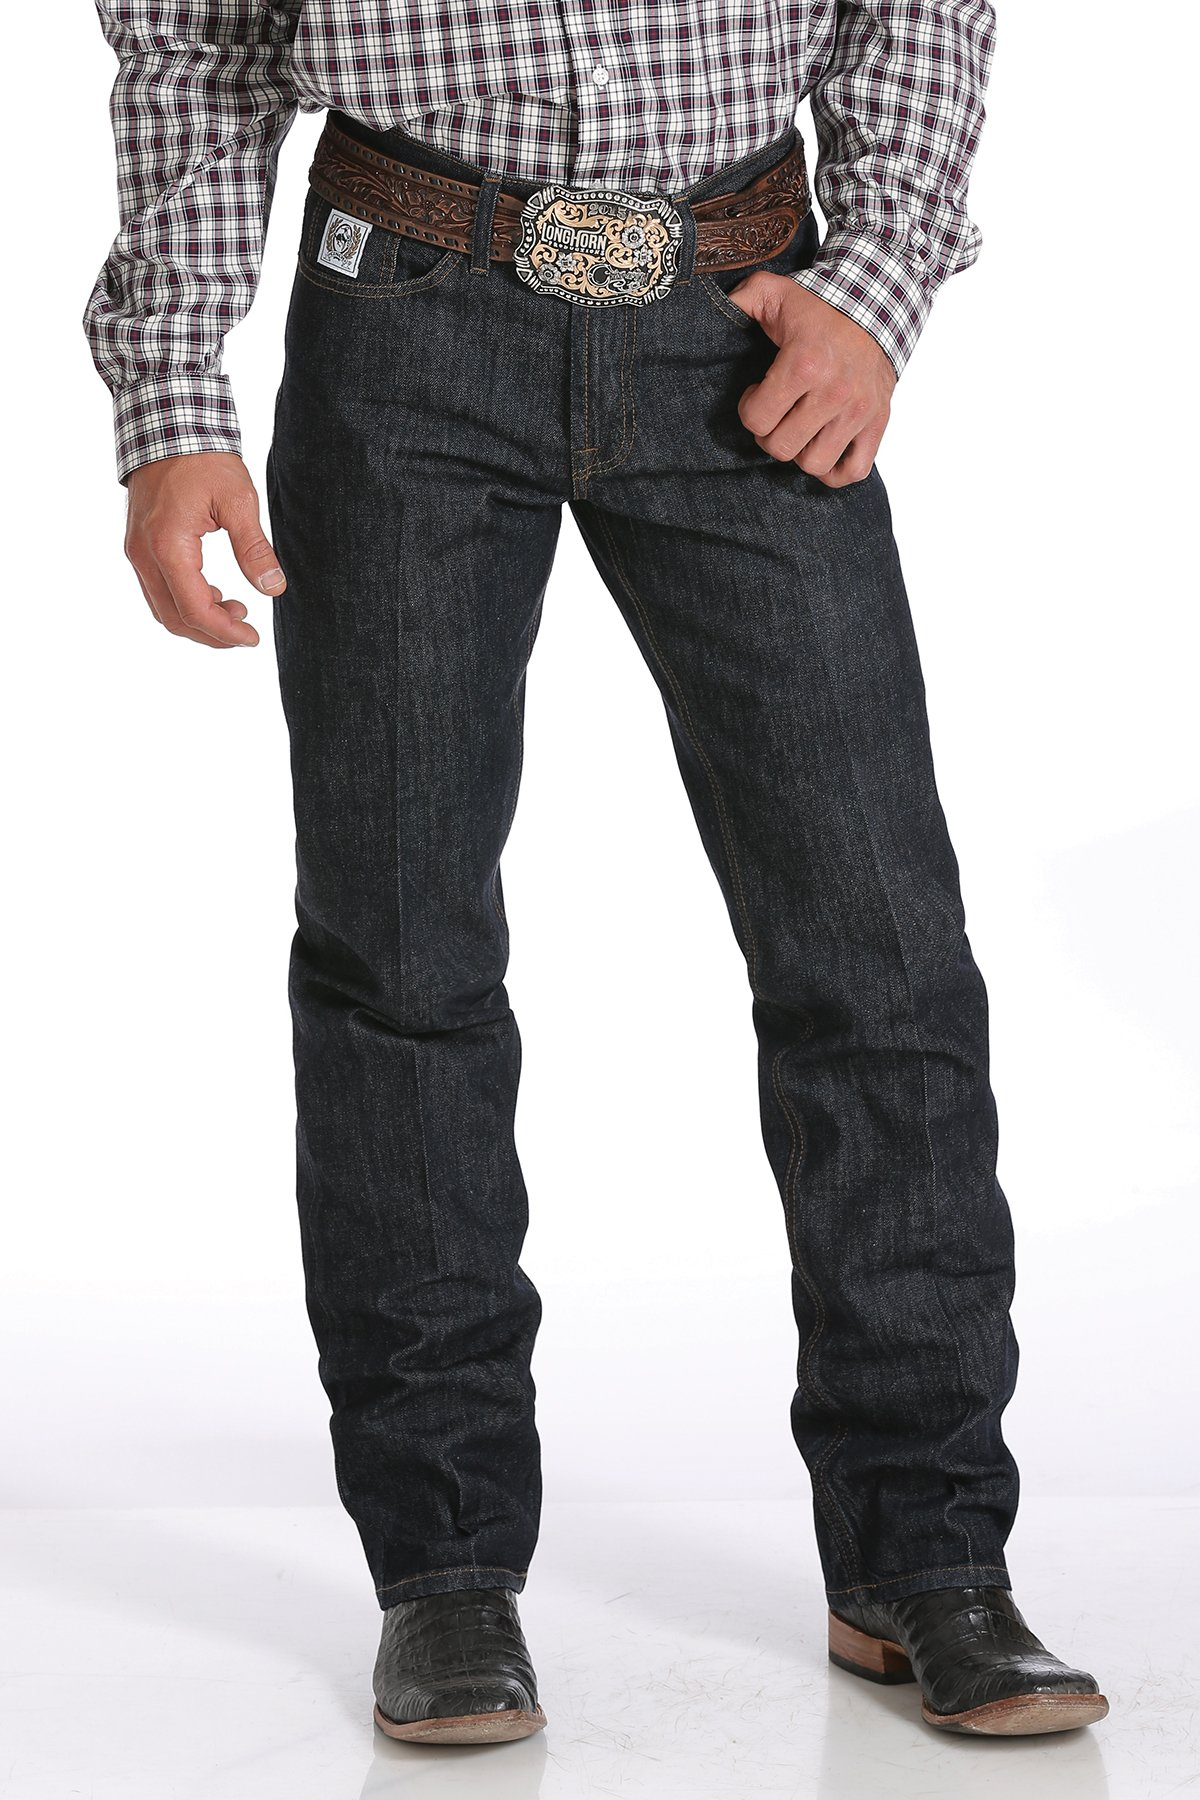 cinch jeans mens relaxed fit white label jeans - dark rinse FUBFDKT